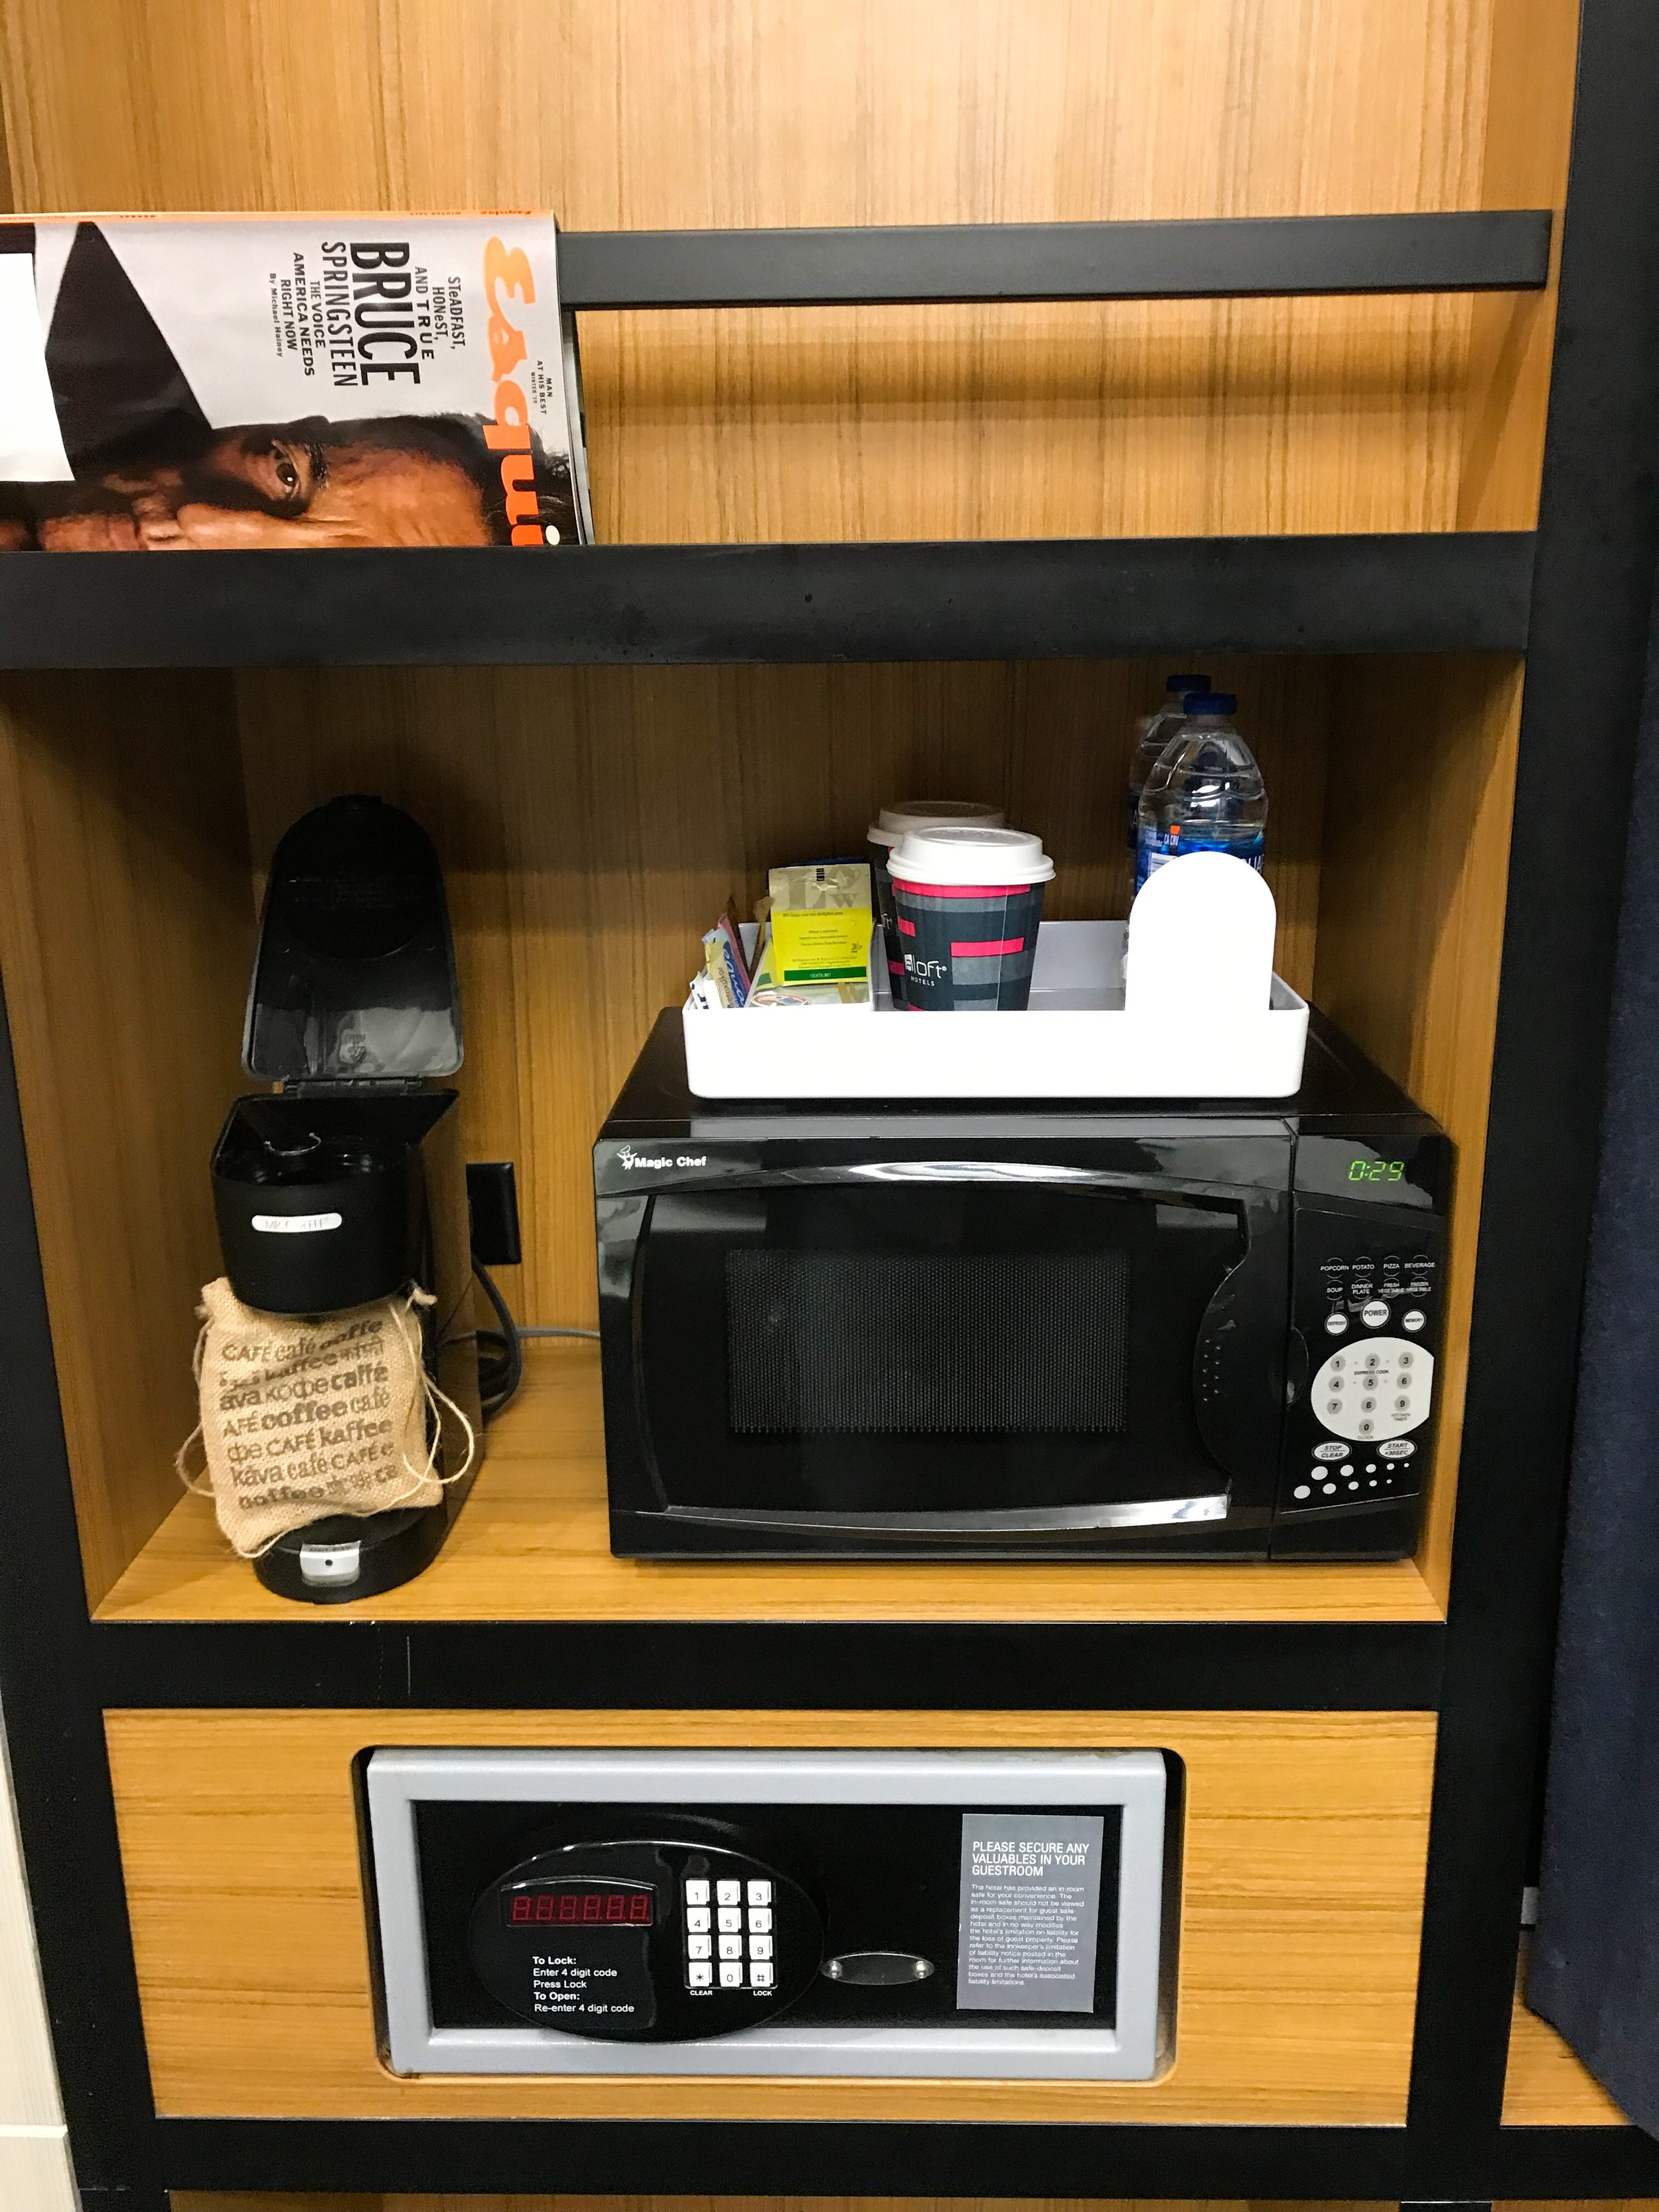 The room had a microwave, coffee station, and safe.